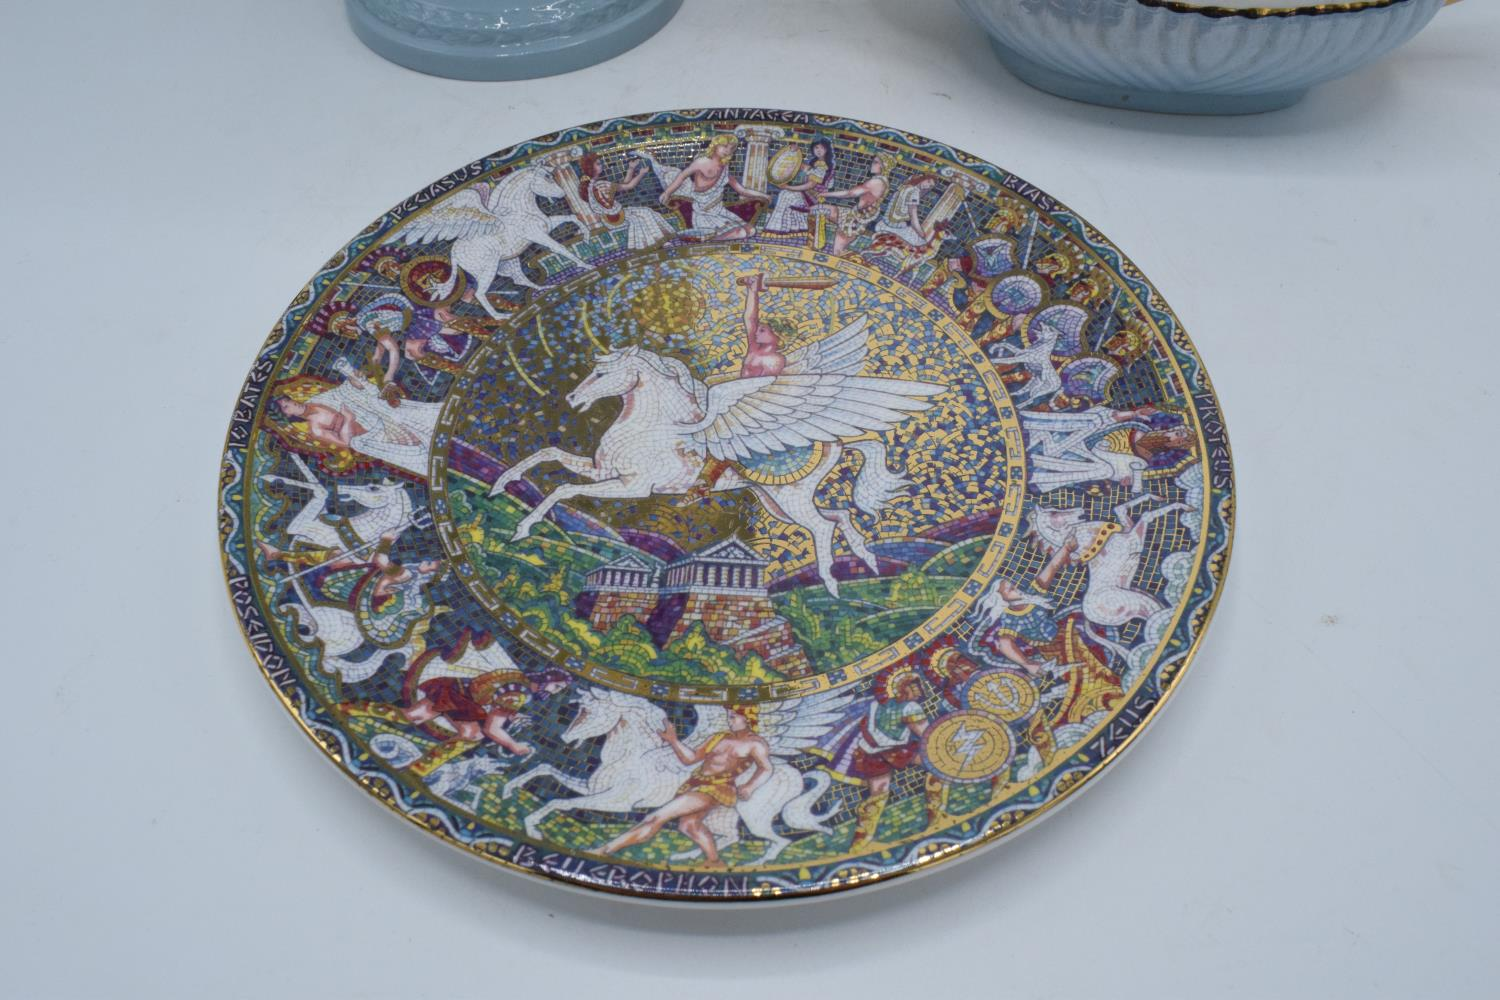 A collection of items to include a large Wedgwood Queensware vase, a Royal Worcester plate of - Image 4 of 4